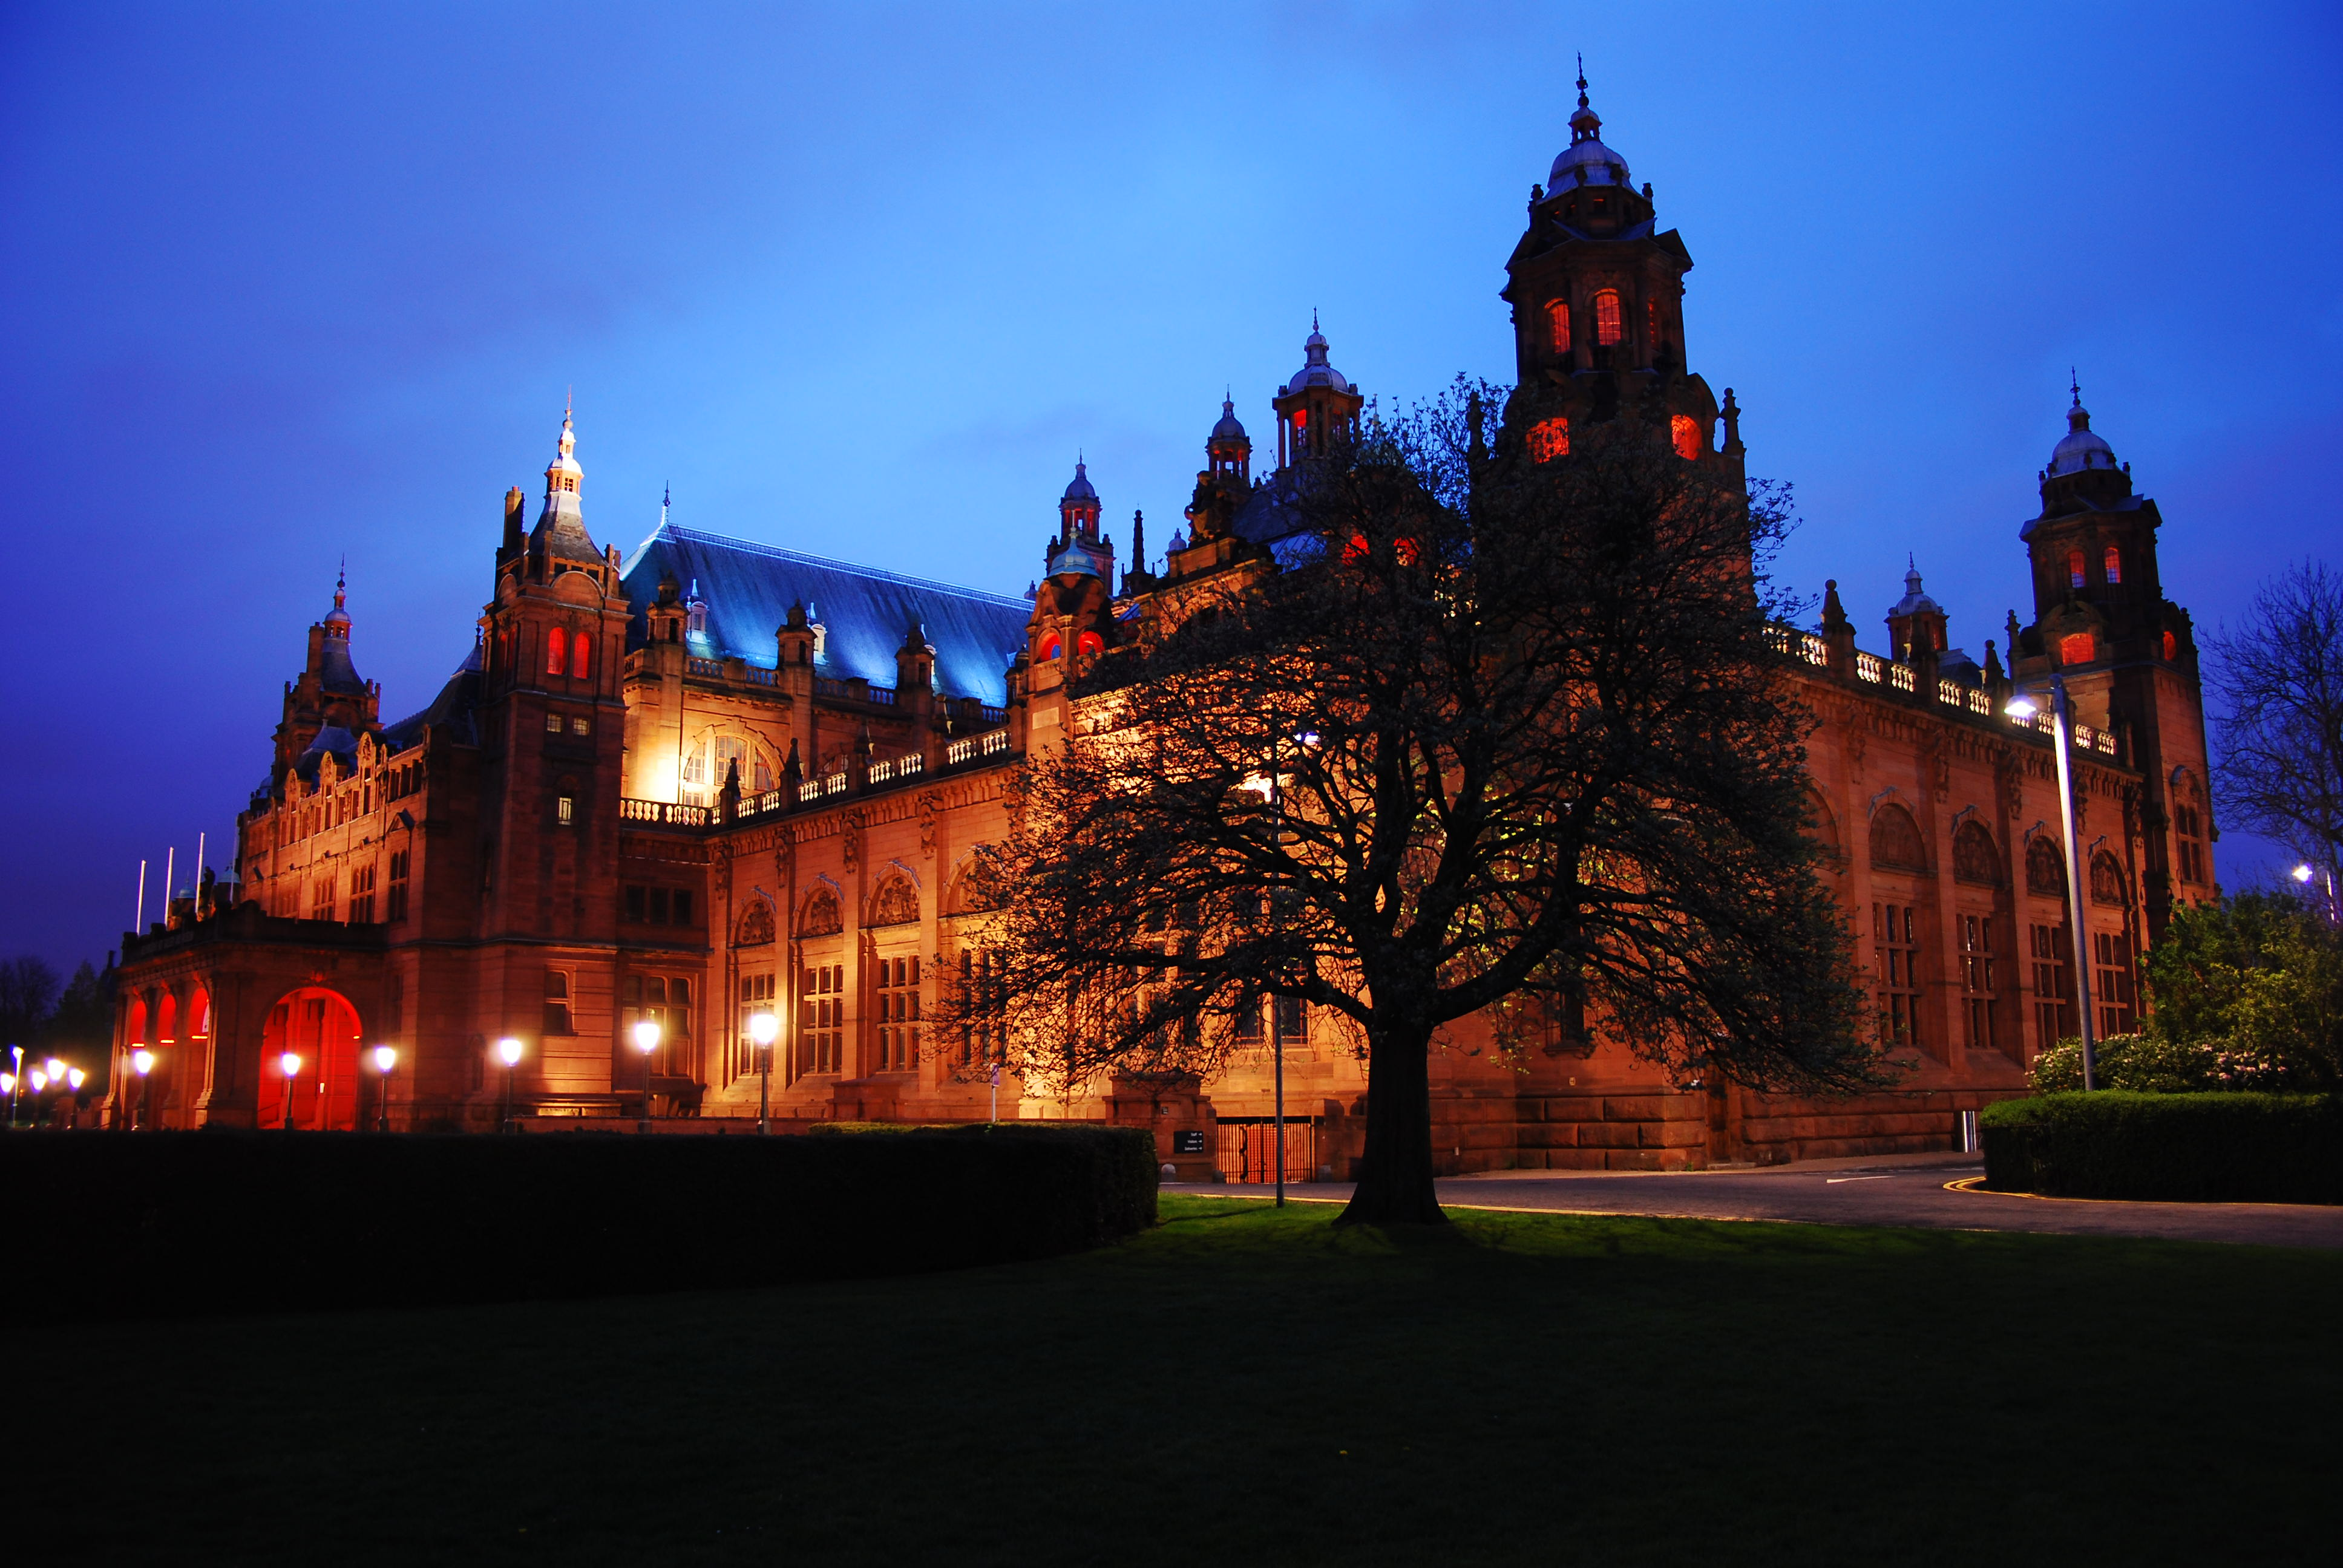 Kelvingrove_Gall_and_Mus_Glasgow